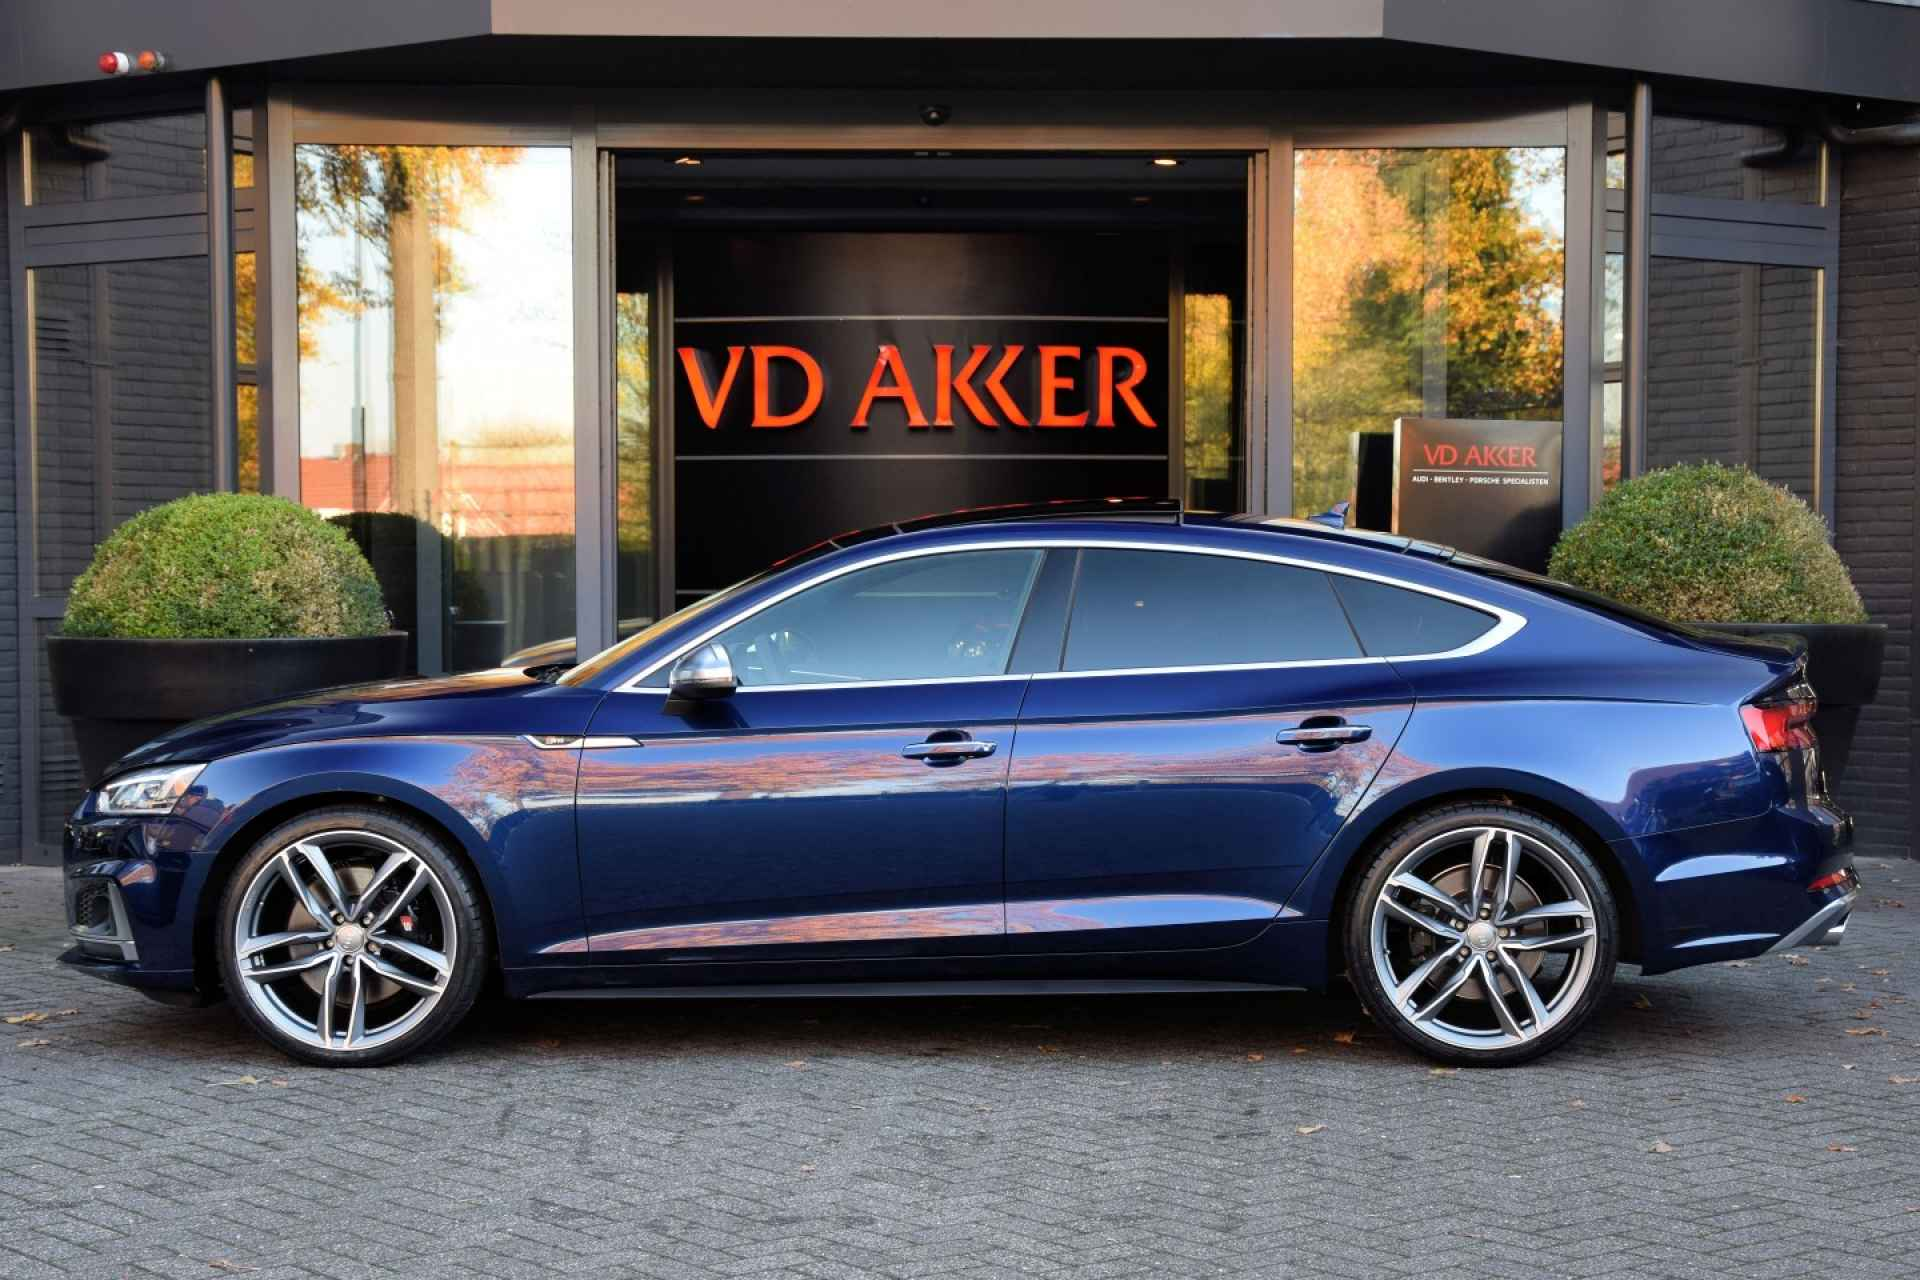 audi s5 sportback occasion vd akker. Black Bedroom Furniture Sets. Home Design Ideas